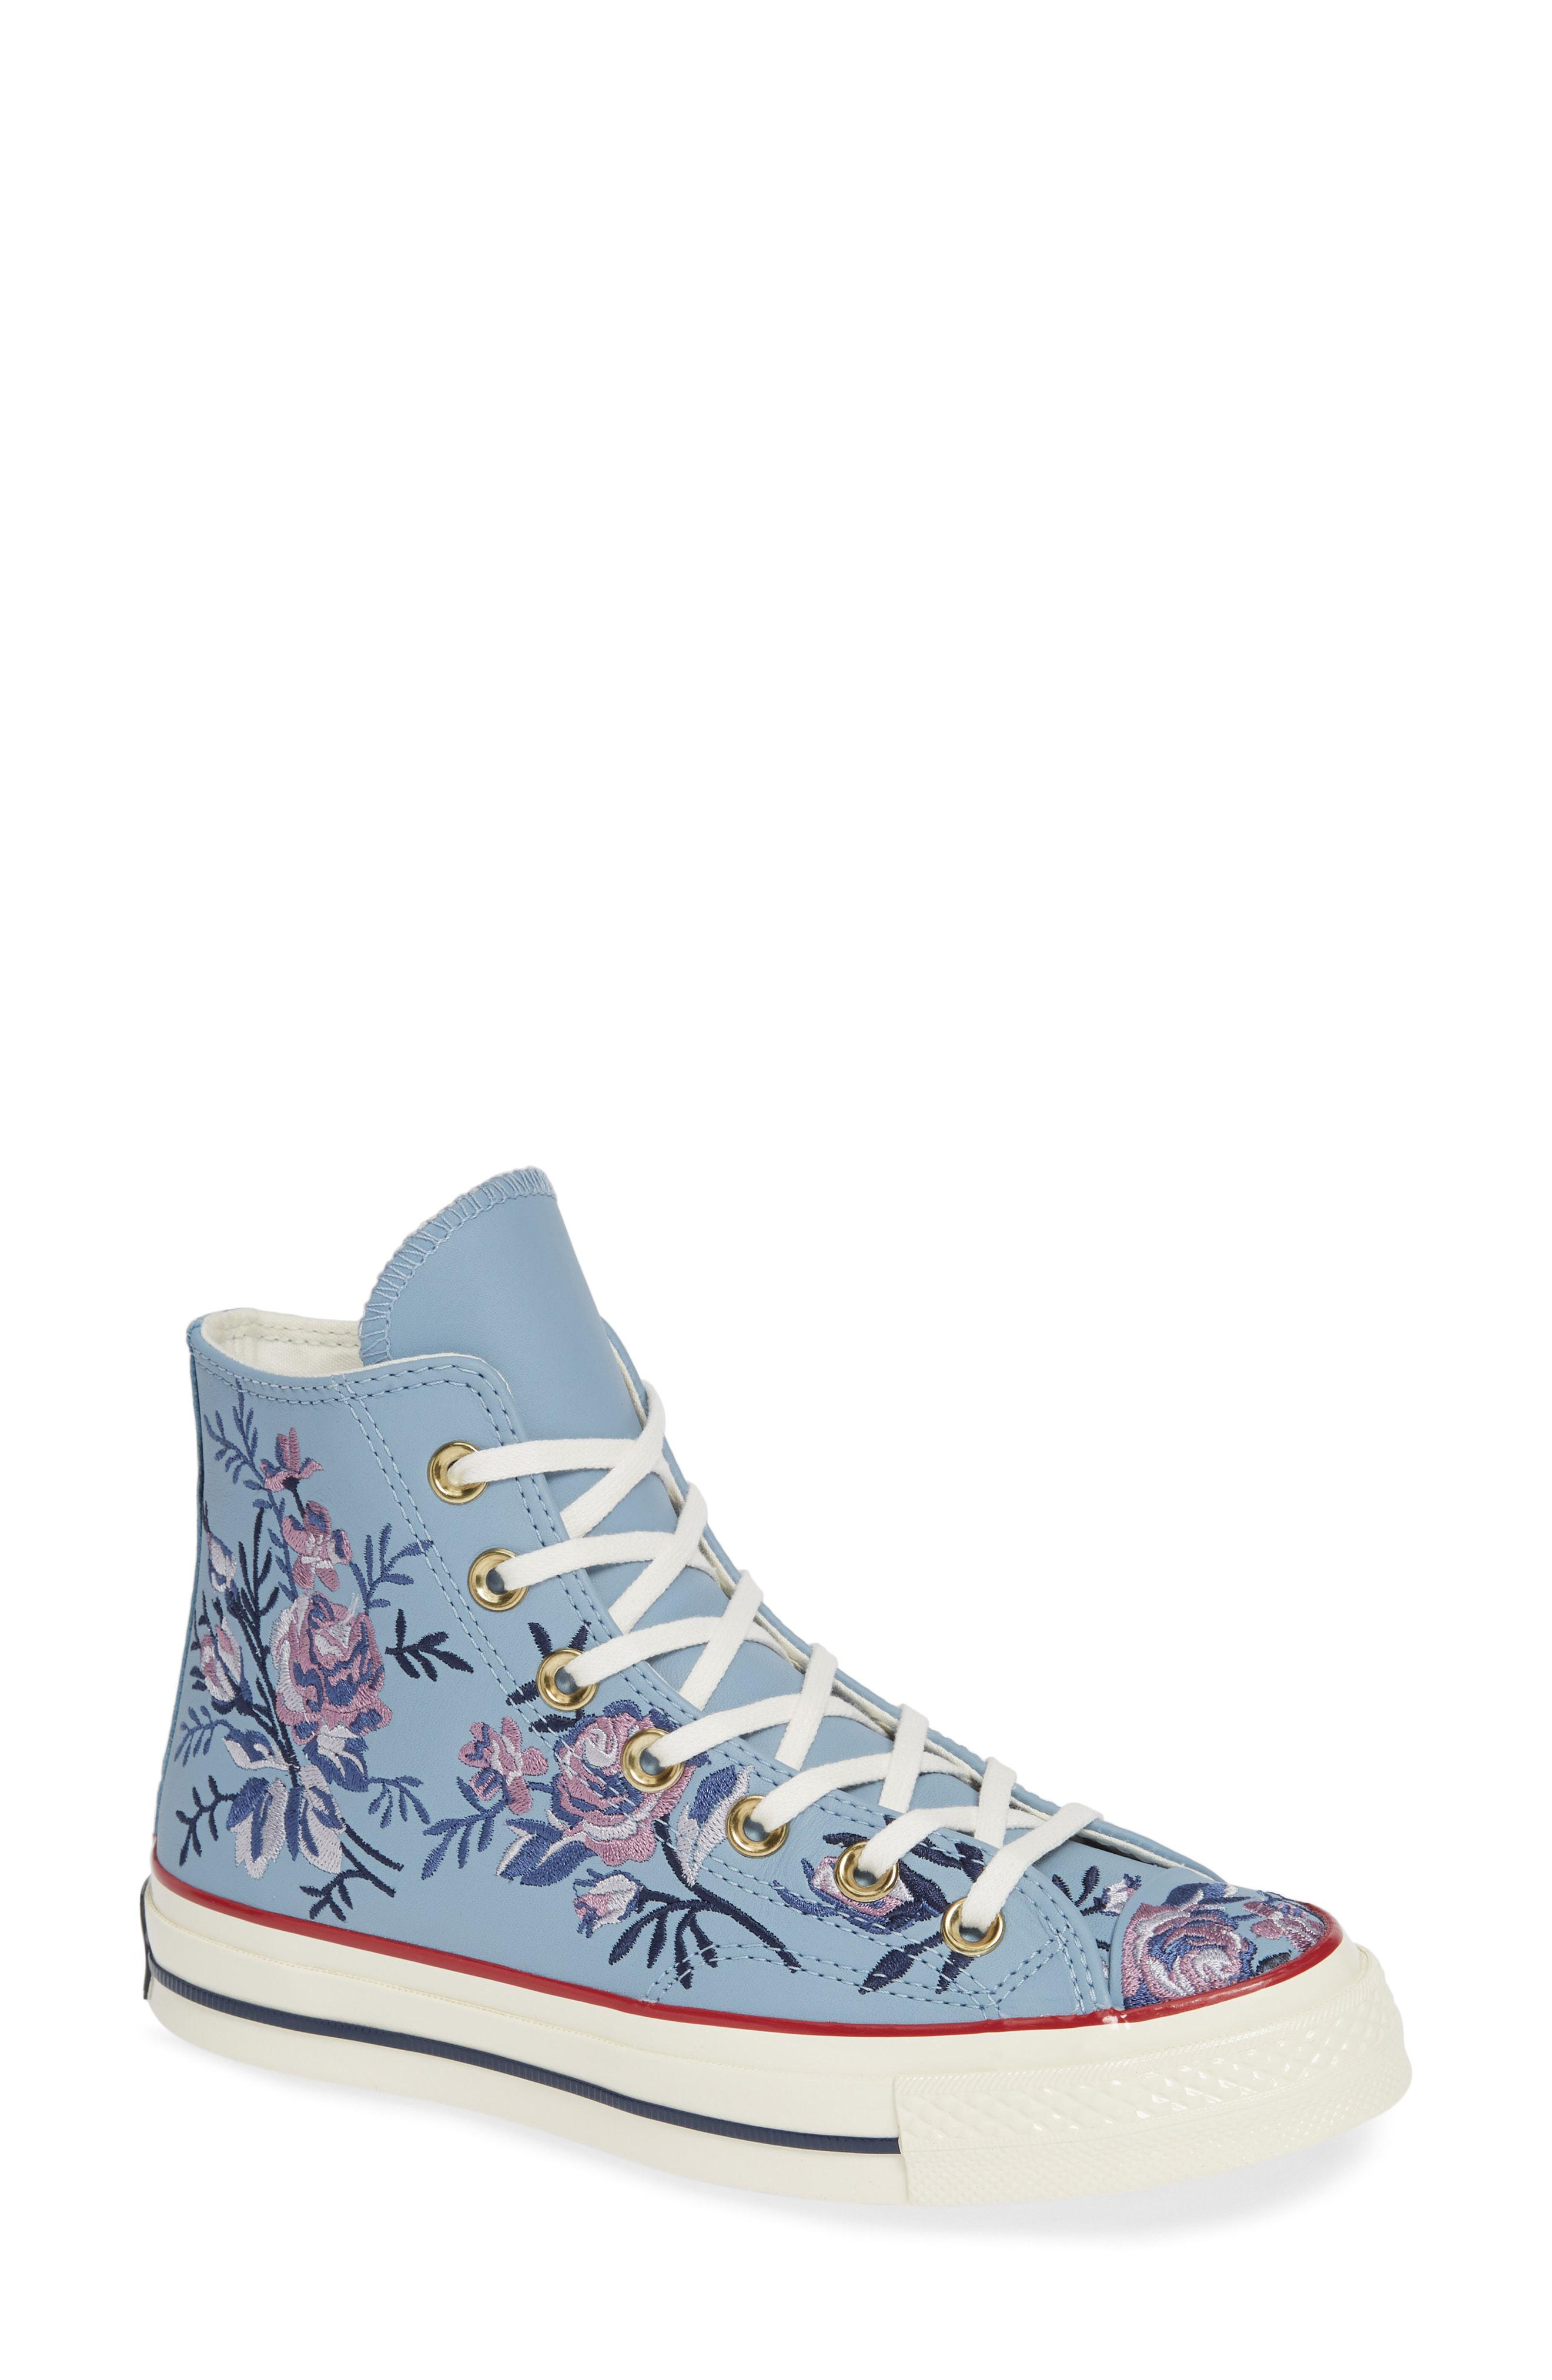 Lyst - Converse Chuck Taylor All Star Parkway Floral 70 High Top ... 8e6b62ab3